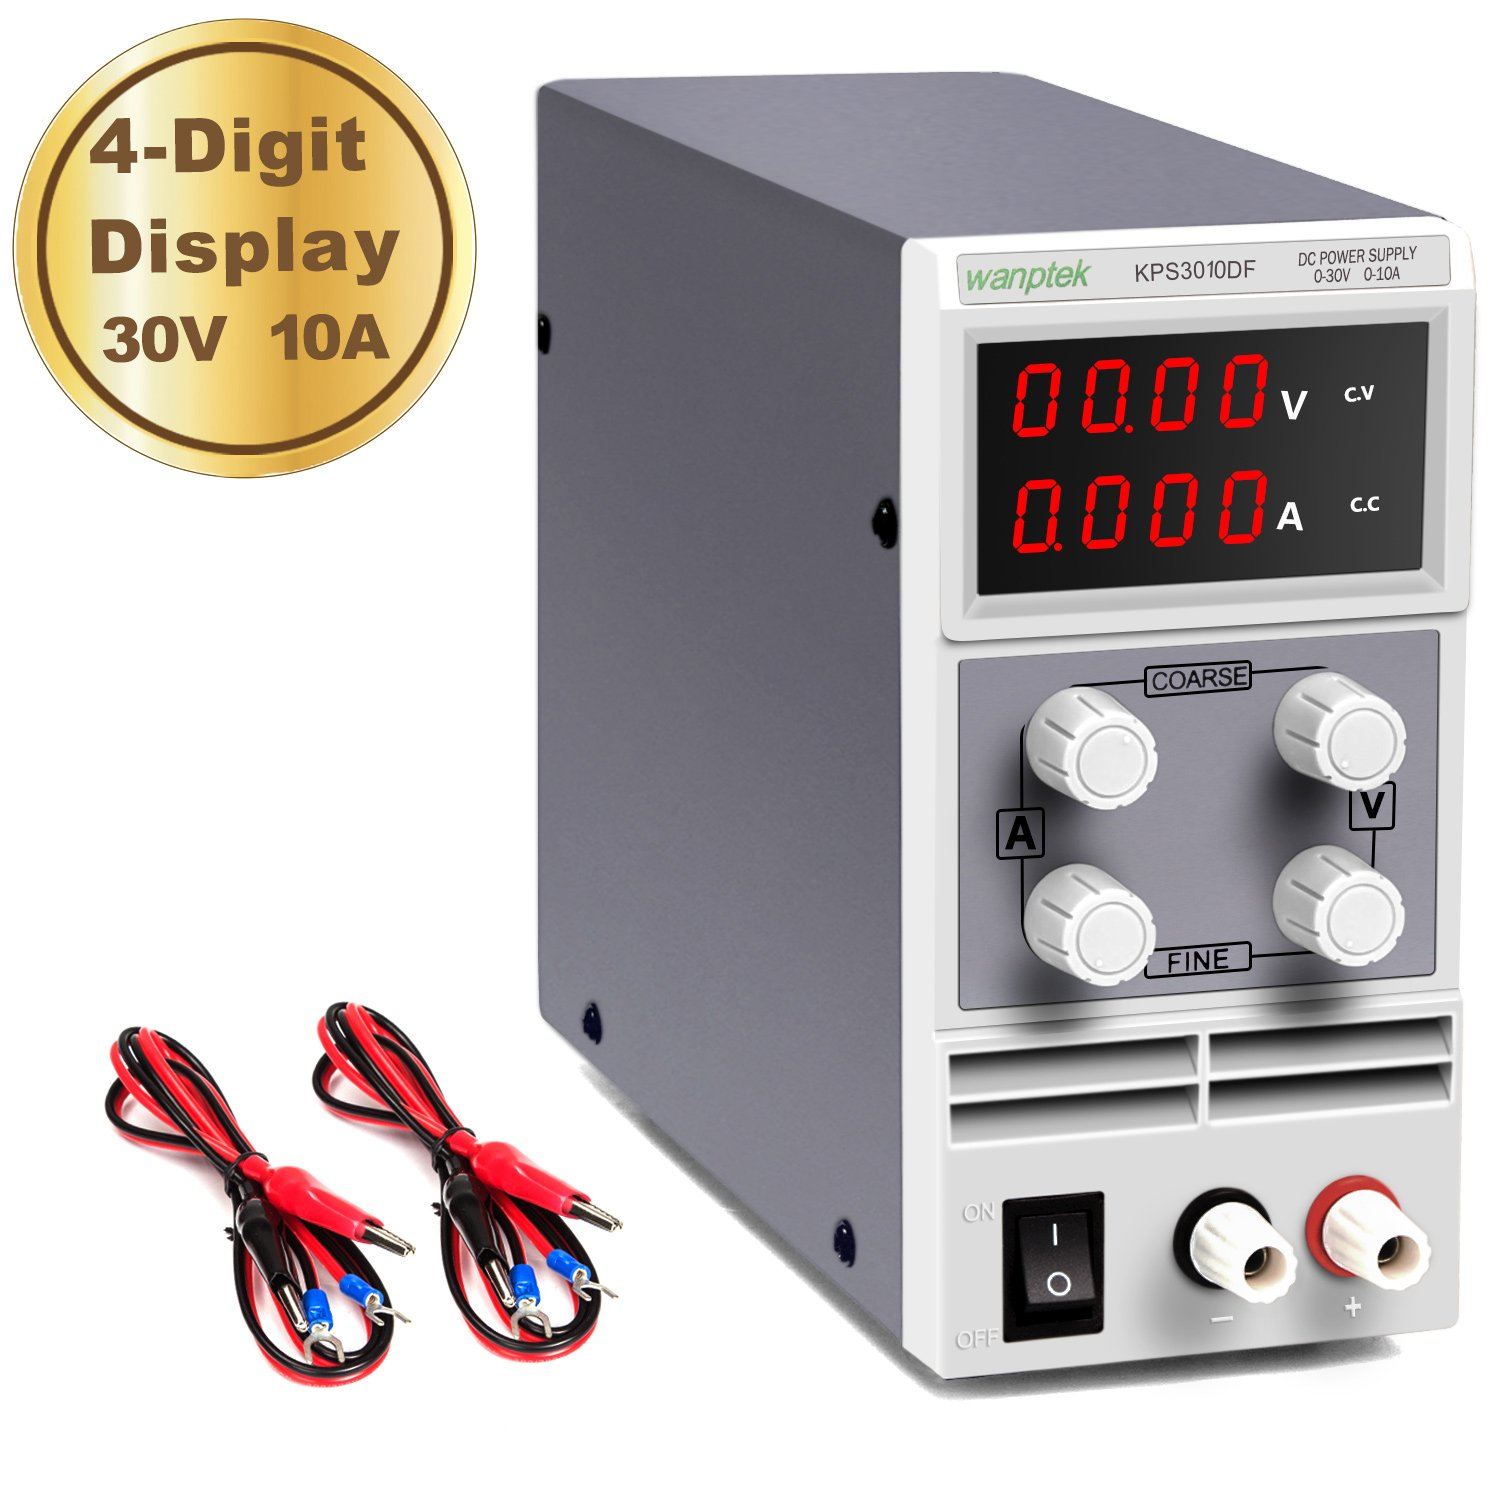 Dc Power Supply Variable 30v 10a 4 Digit Led Display Upgraded Circuit Diagram Of 0 Regulated Version Precision Adjustable Bench With 2